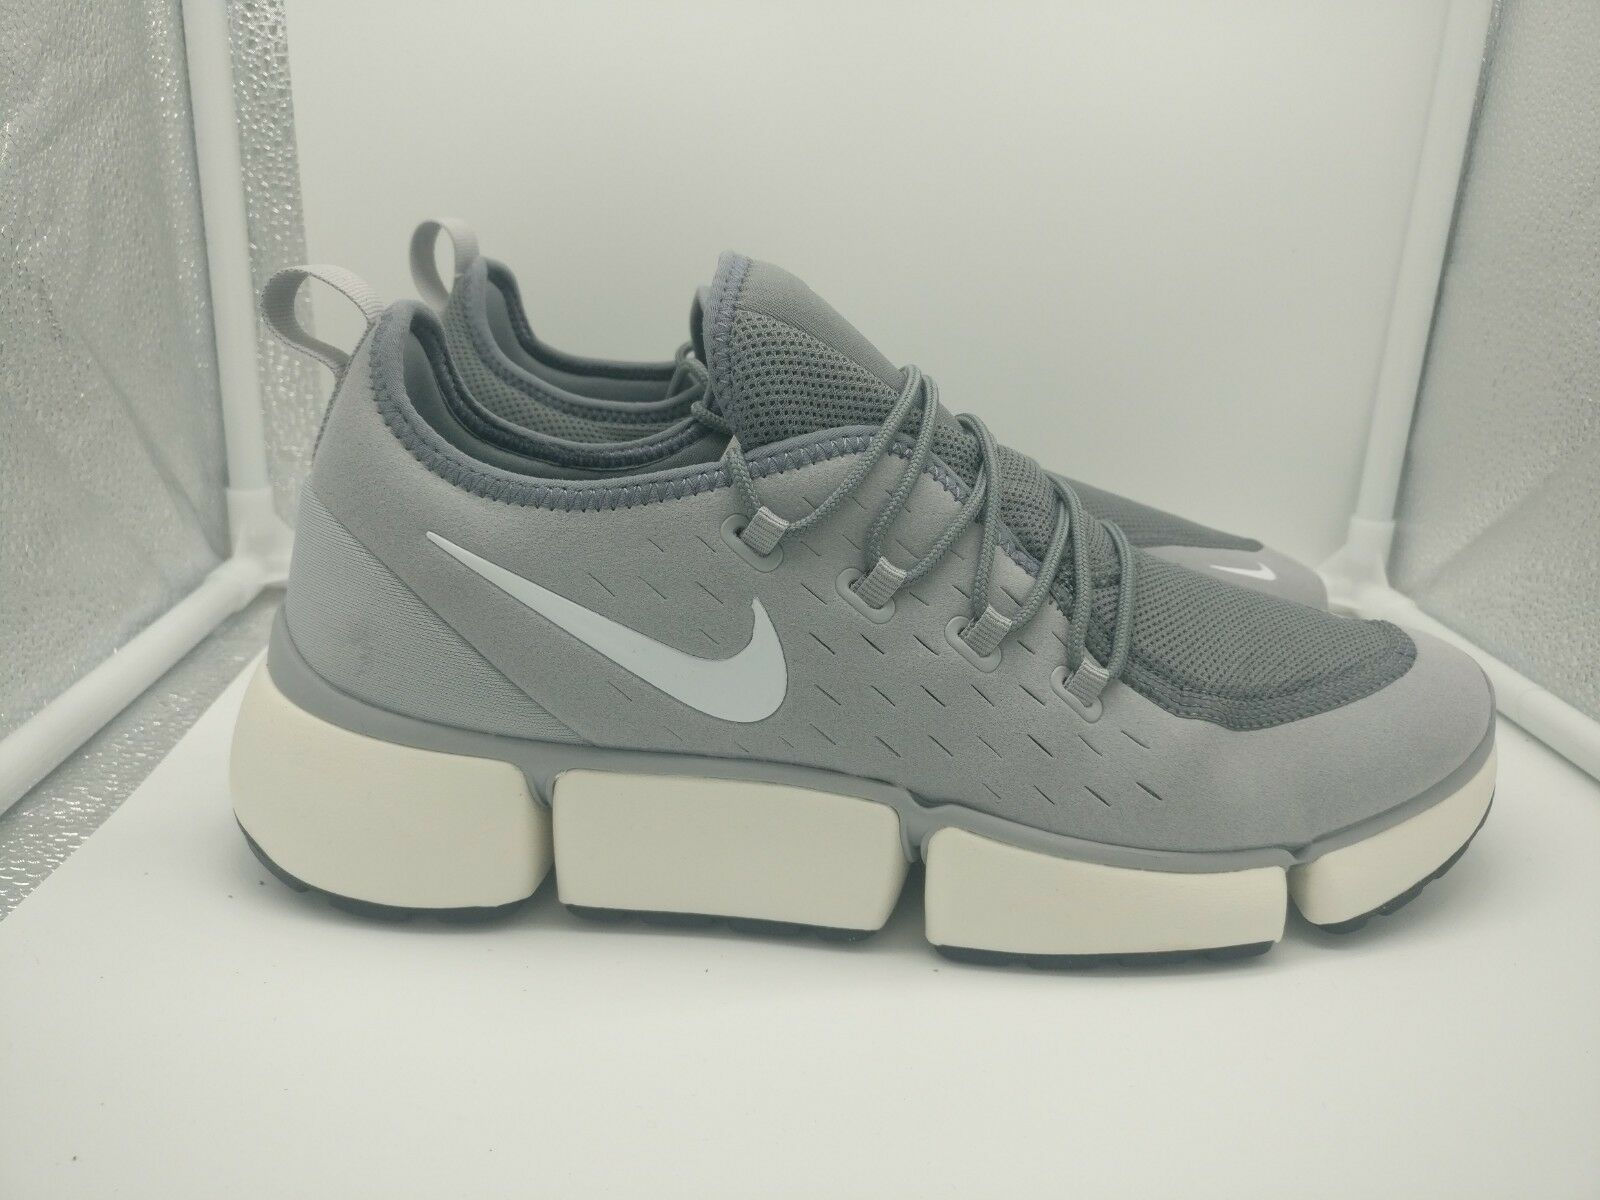 Nike Pocket Fly DM UK 8.5 Wolf Grey White Cool Grey Sail AJ9520-005